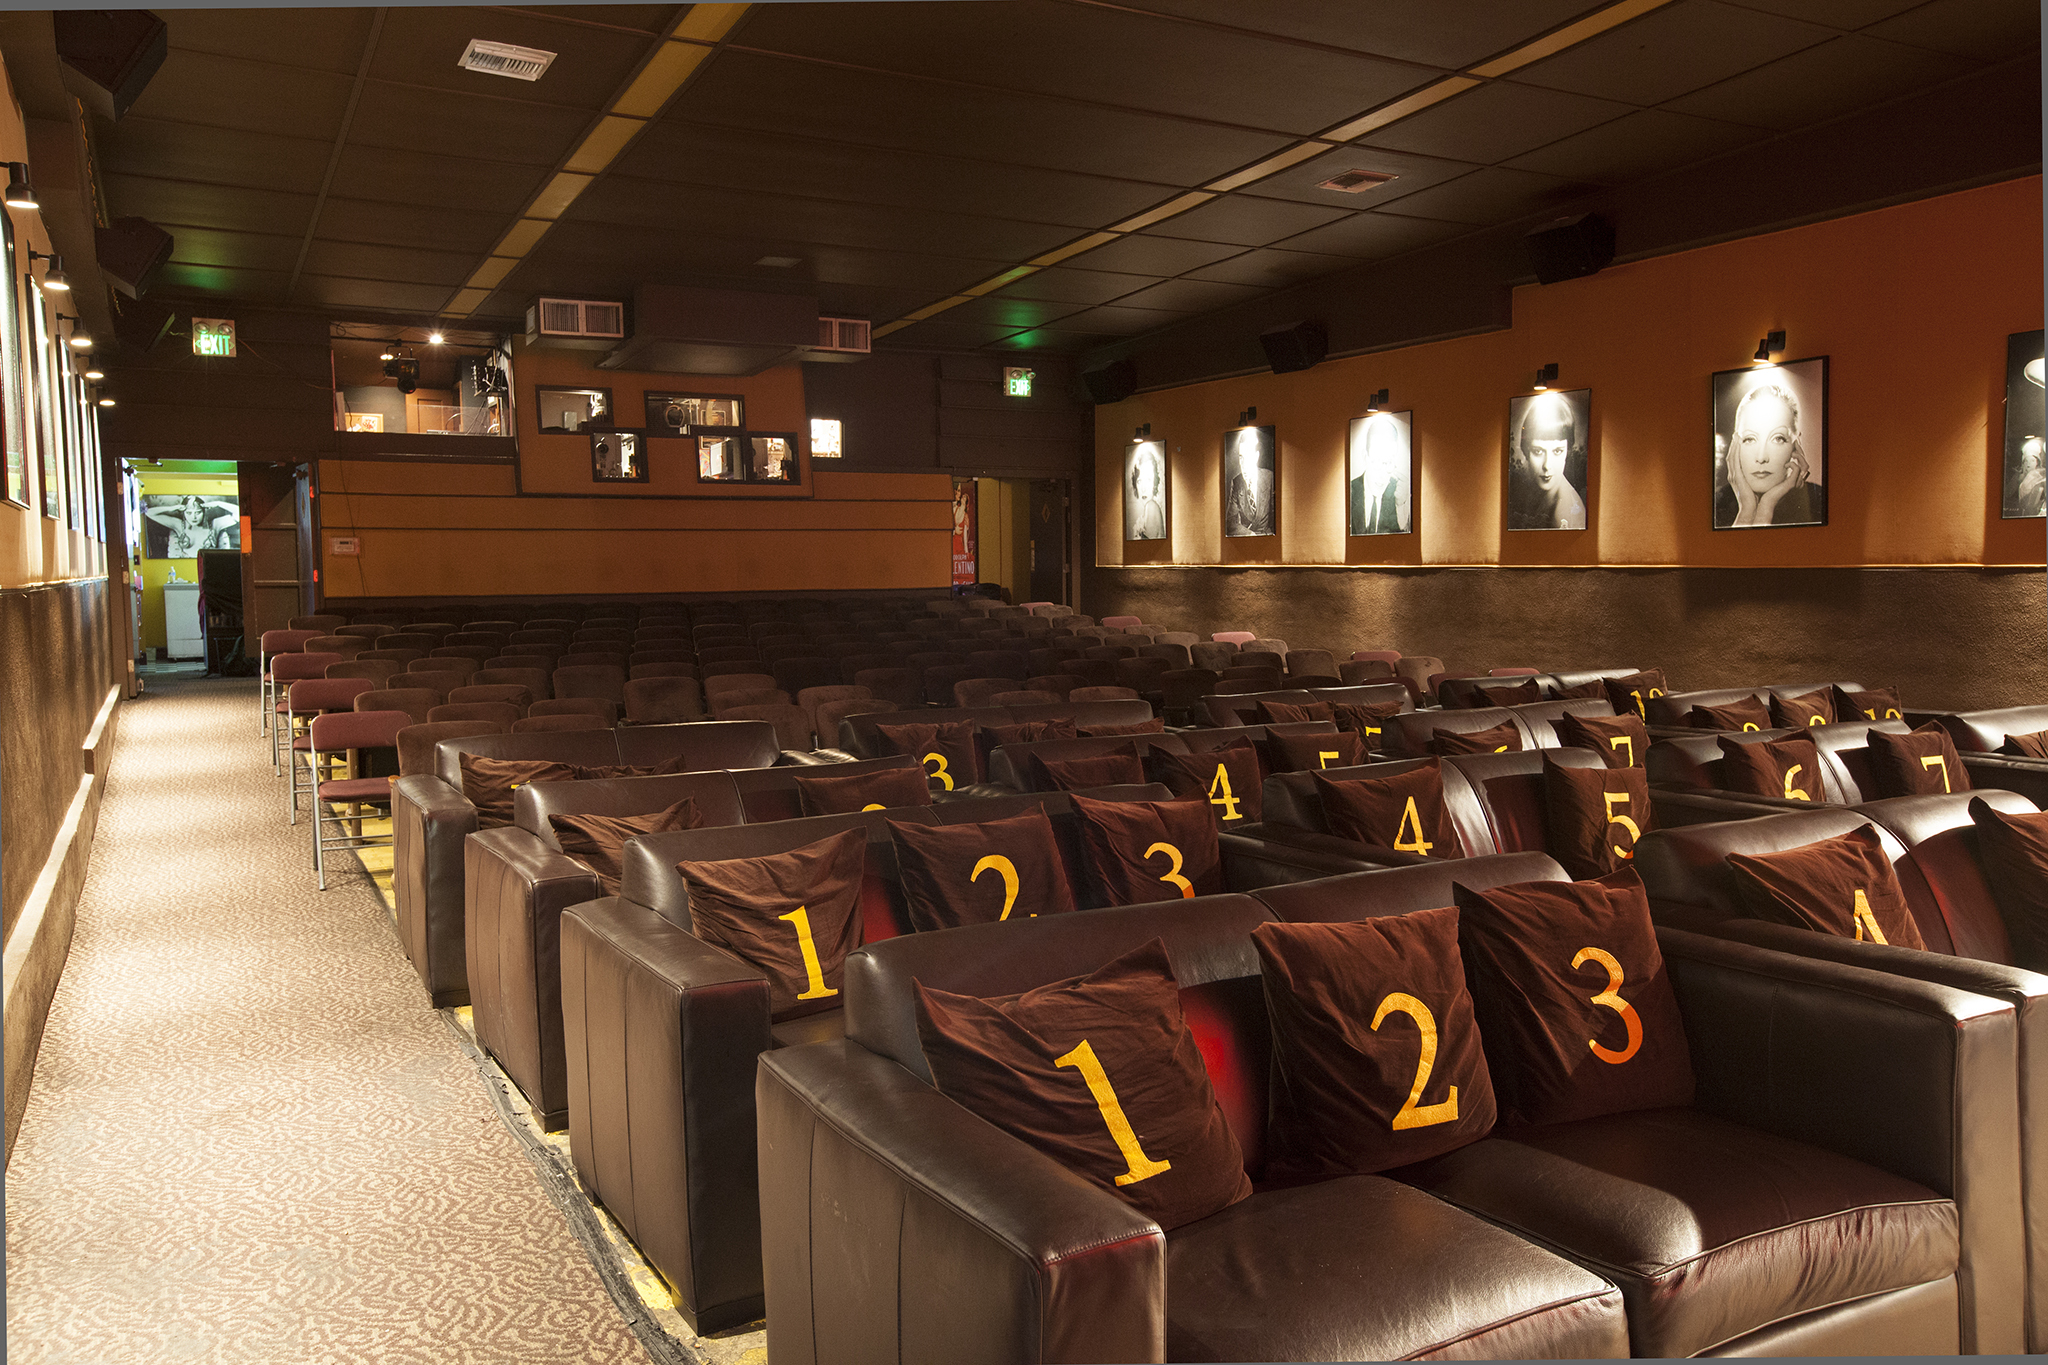 Best arthourse cinema: Cinefamily at the Silent Movie Theatre